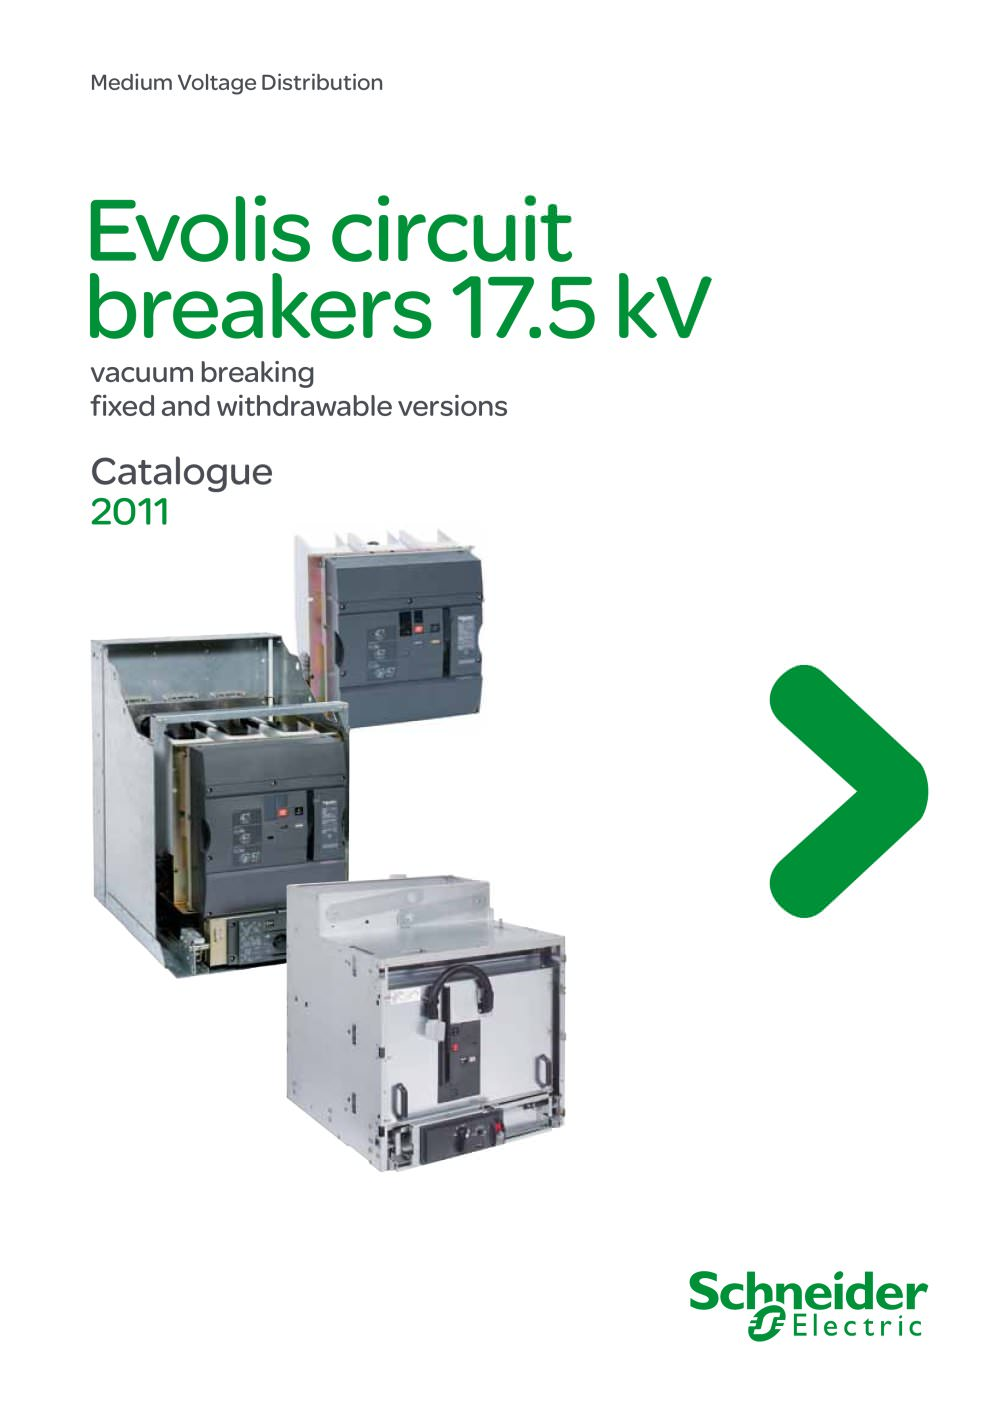 Catalogue Evolis Circuit Breakers 175kv Schneider Electric How To Build A Simple Breaker Unit Electronic 1 92 Pages